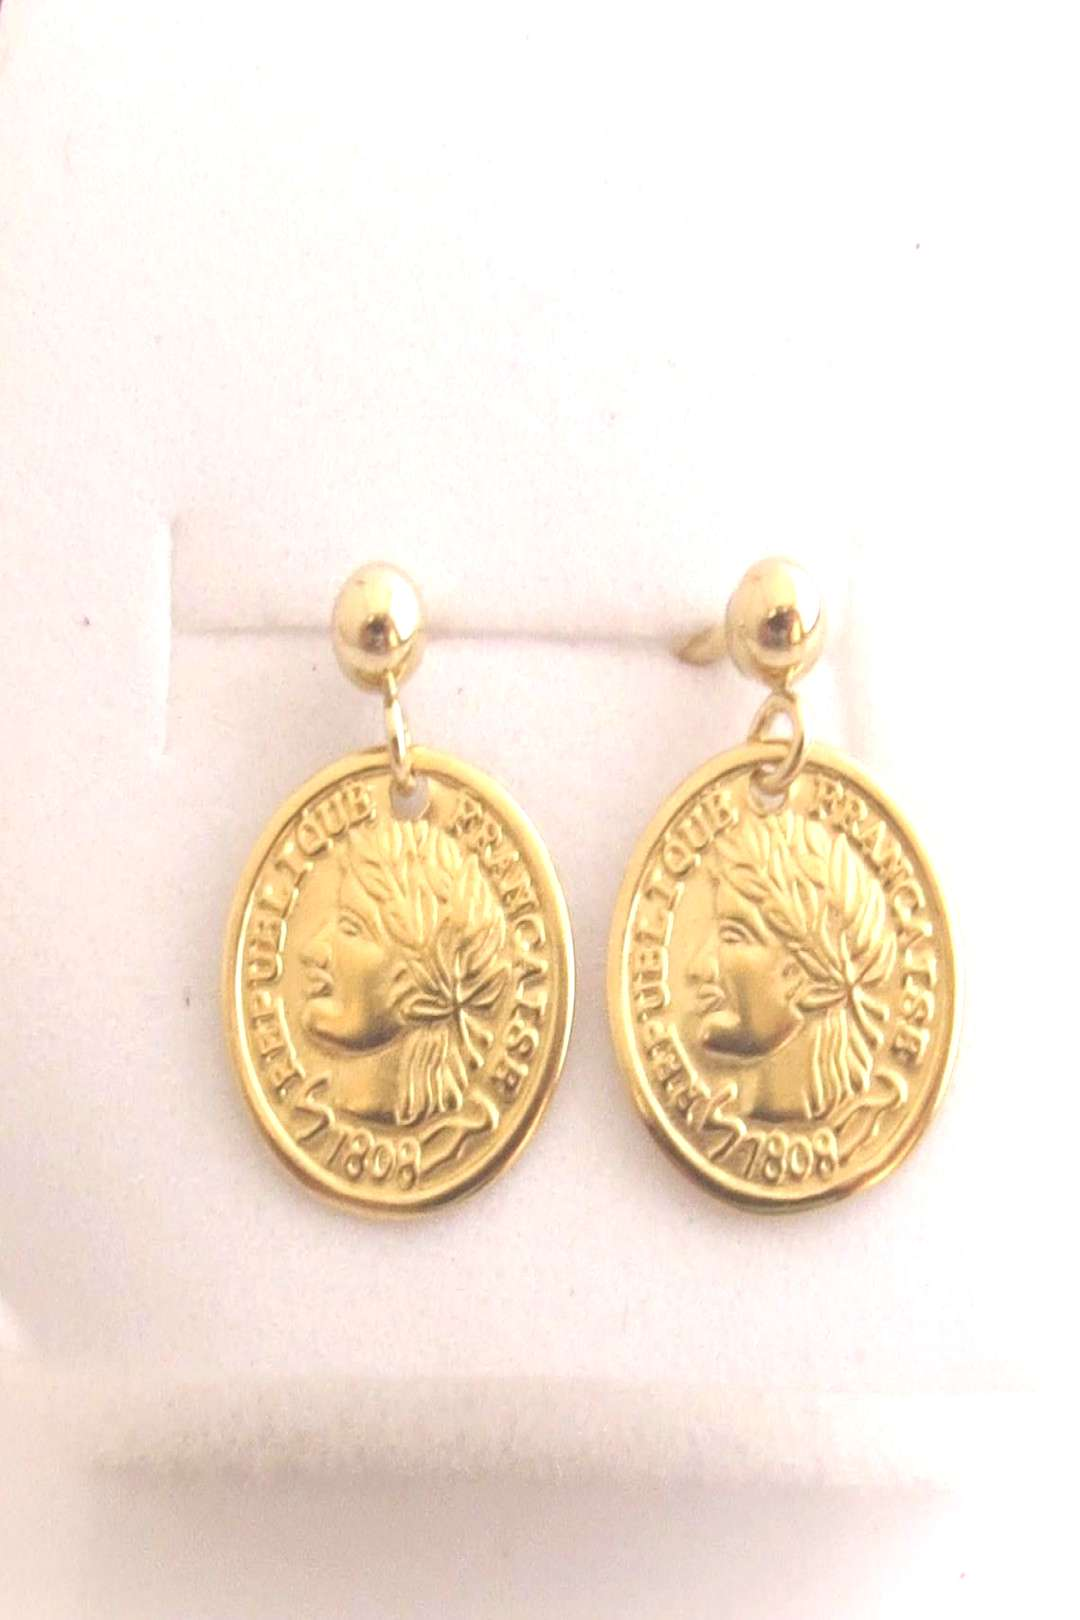 Gold coin stud earrings, Gold filled ball stud earrings, gold disc piercing, Roman coin, ancient, b